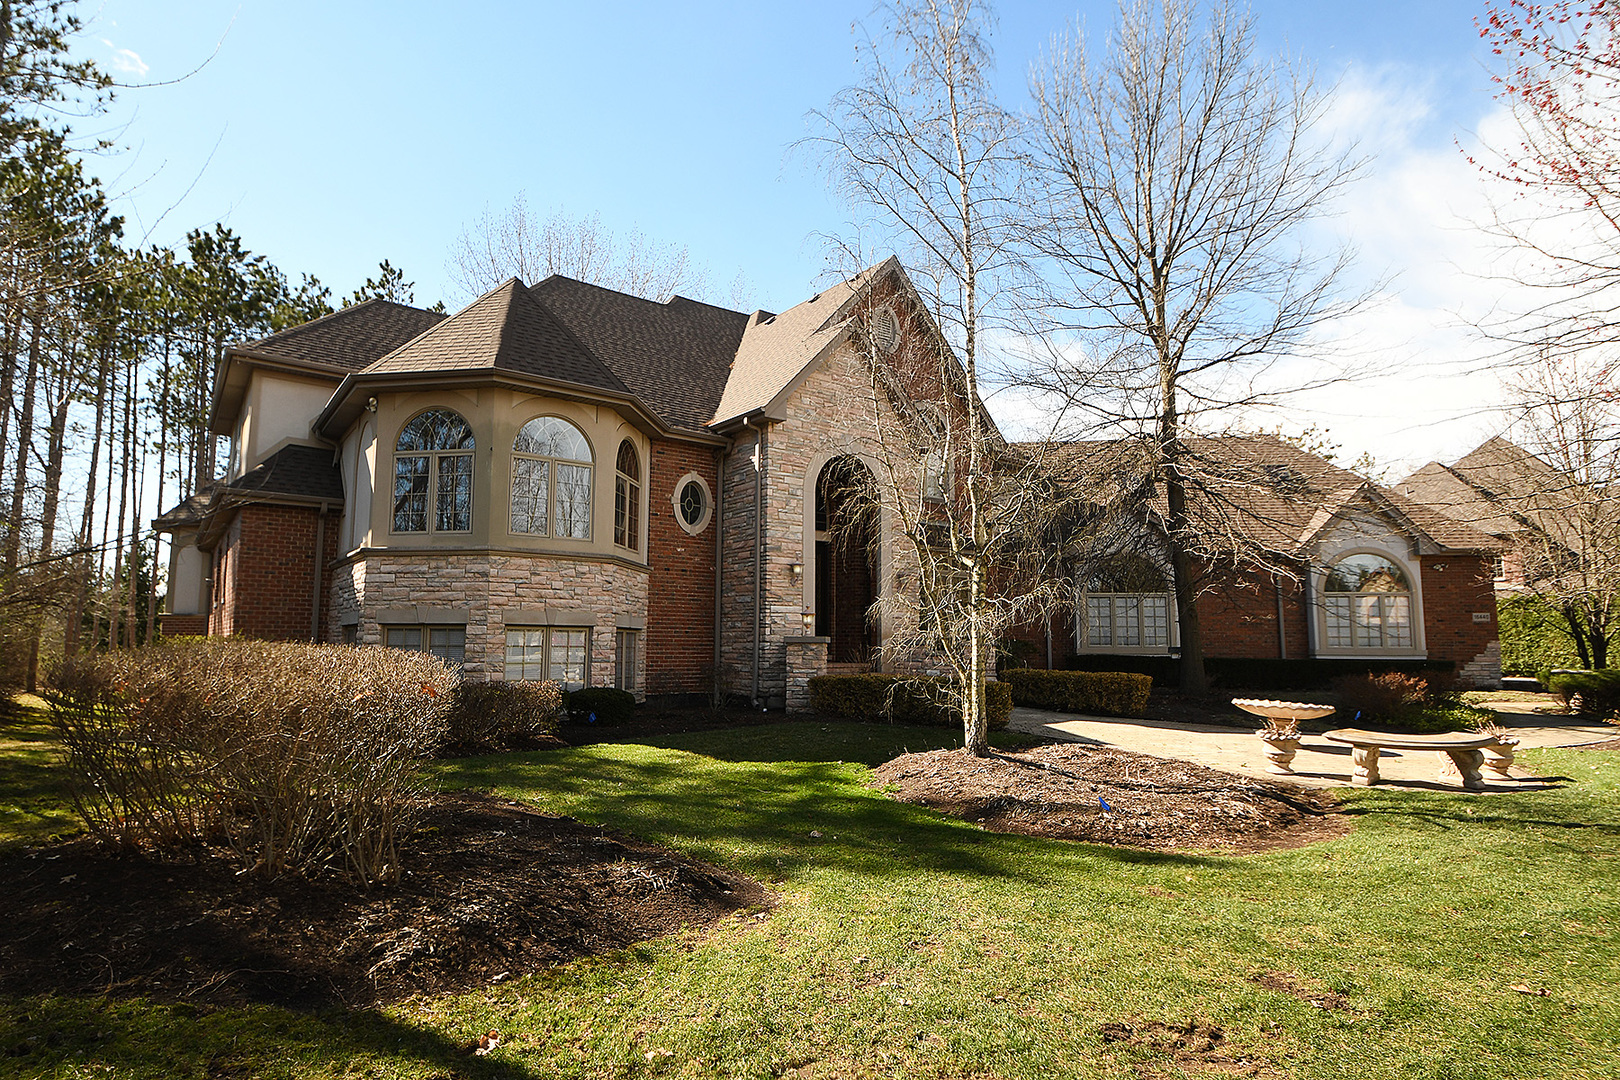 16440 South Alberta Court, one of homes for sale in Homer Glen